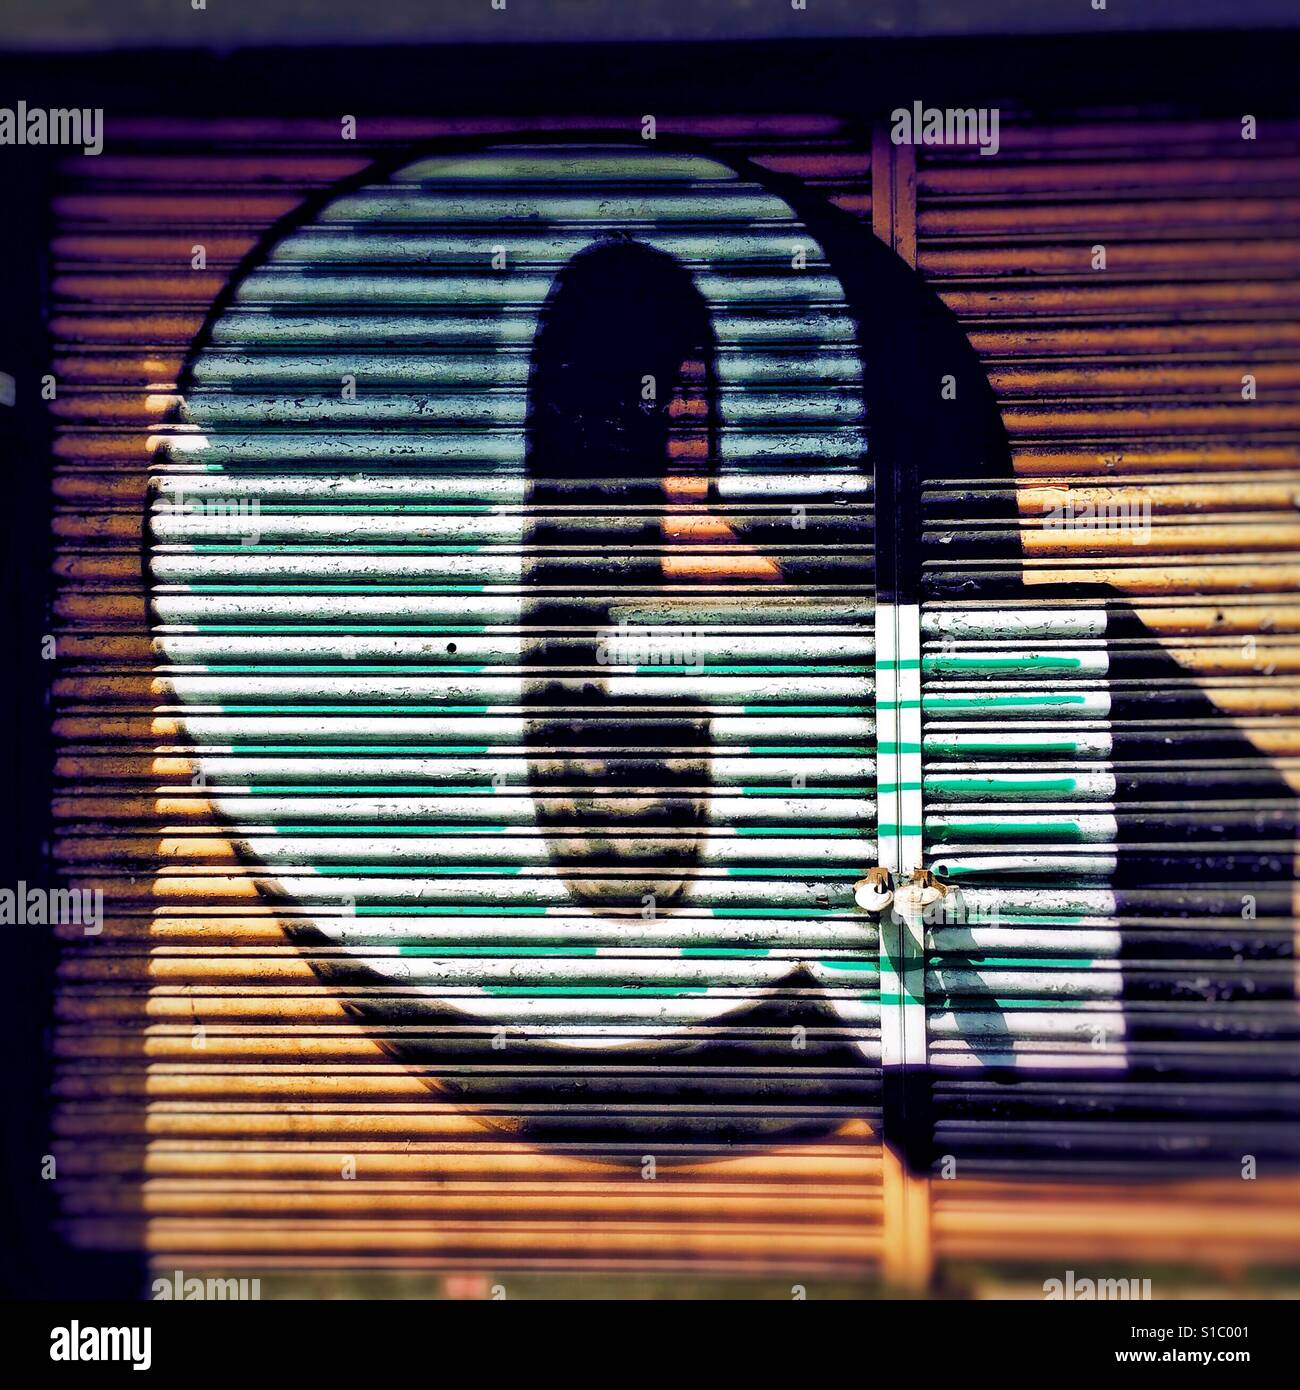 Detail from graffiti art by street artist Ben Eine, showing a colourful, stylised letter G painted onto shutters. - Stock Image